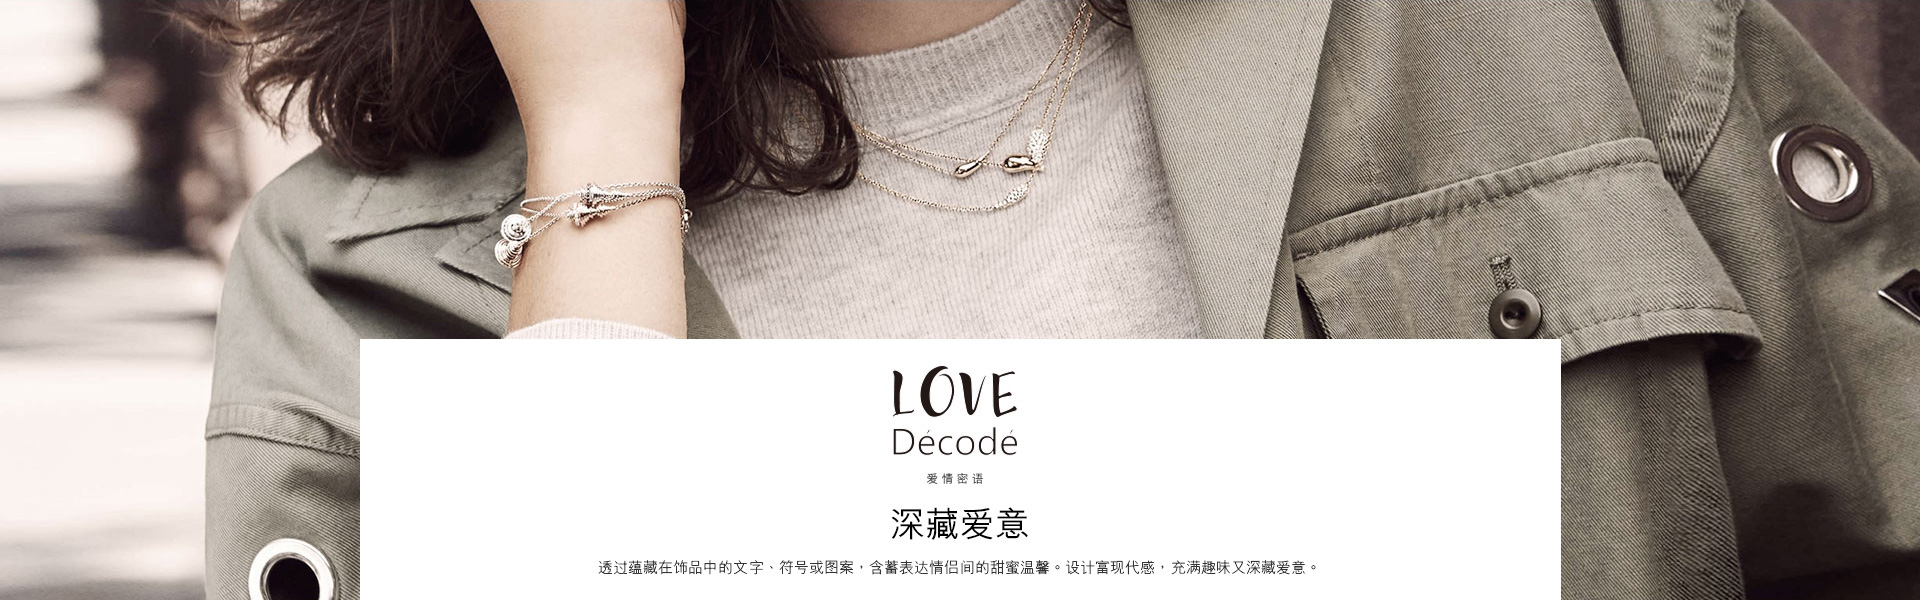 Love-Decode1920-tmall&jd_01.jpg